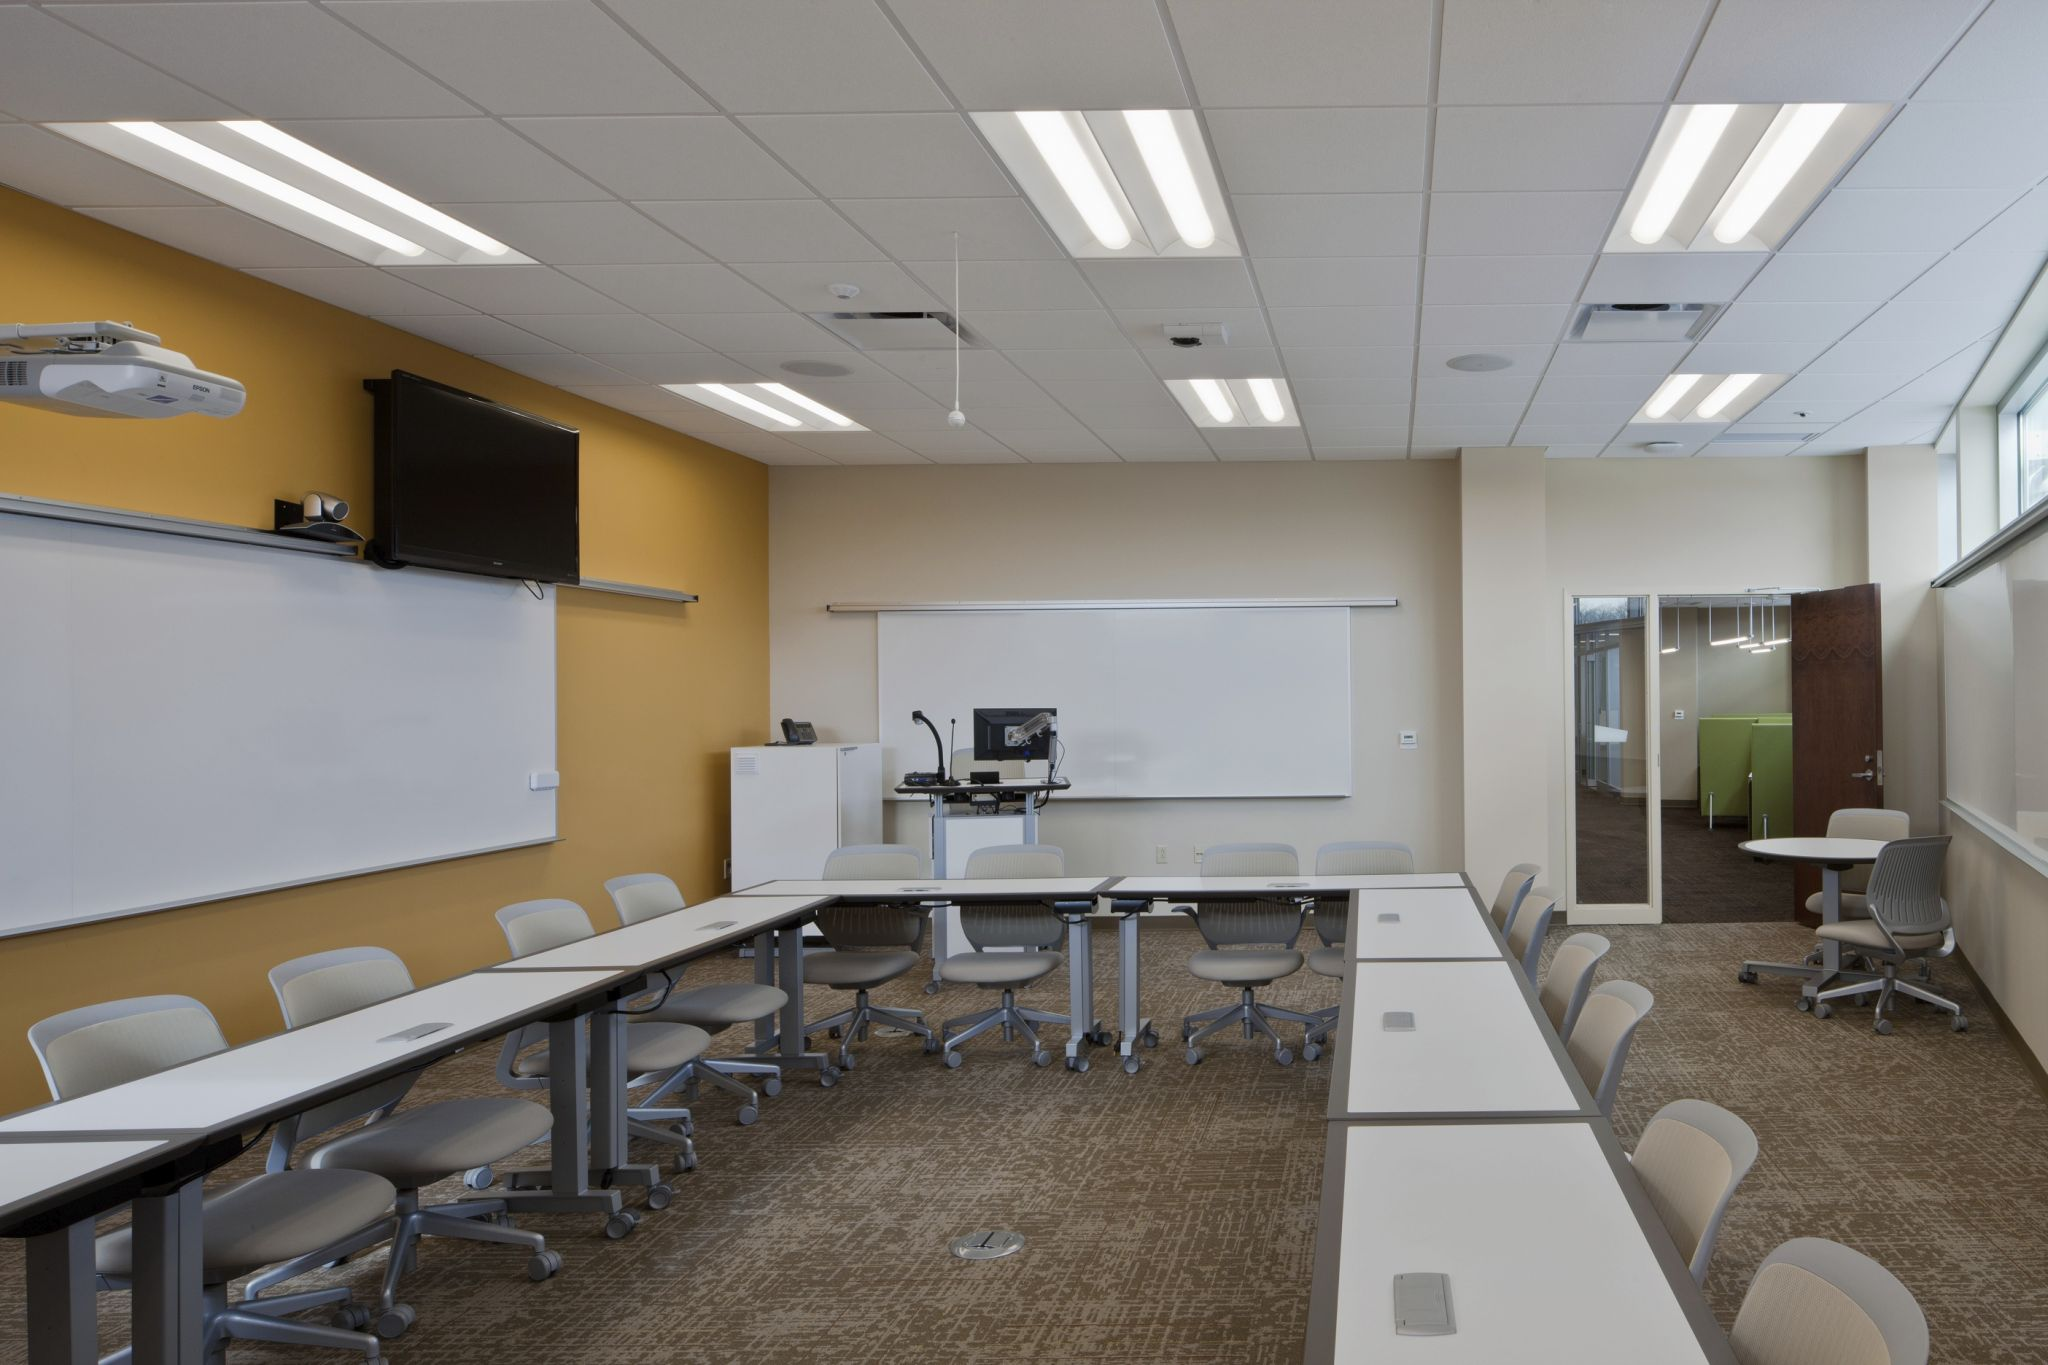 Lakeland Community College's Holden University Center (Kirtland, Ohio) installed light-emitting diode (LED) integrated with digital controls to easily implement various lighting 'scenes' for different classroom activities. [CREDIT] Photo © Acuity Brands/Lithonia Lighting